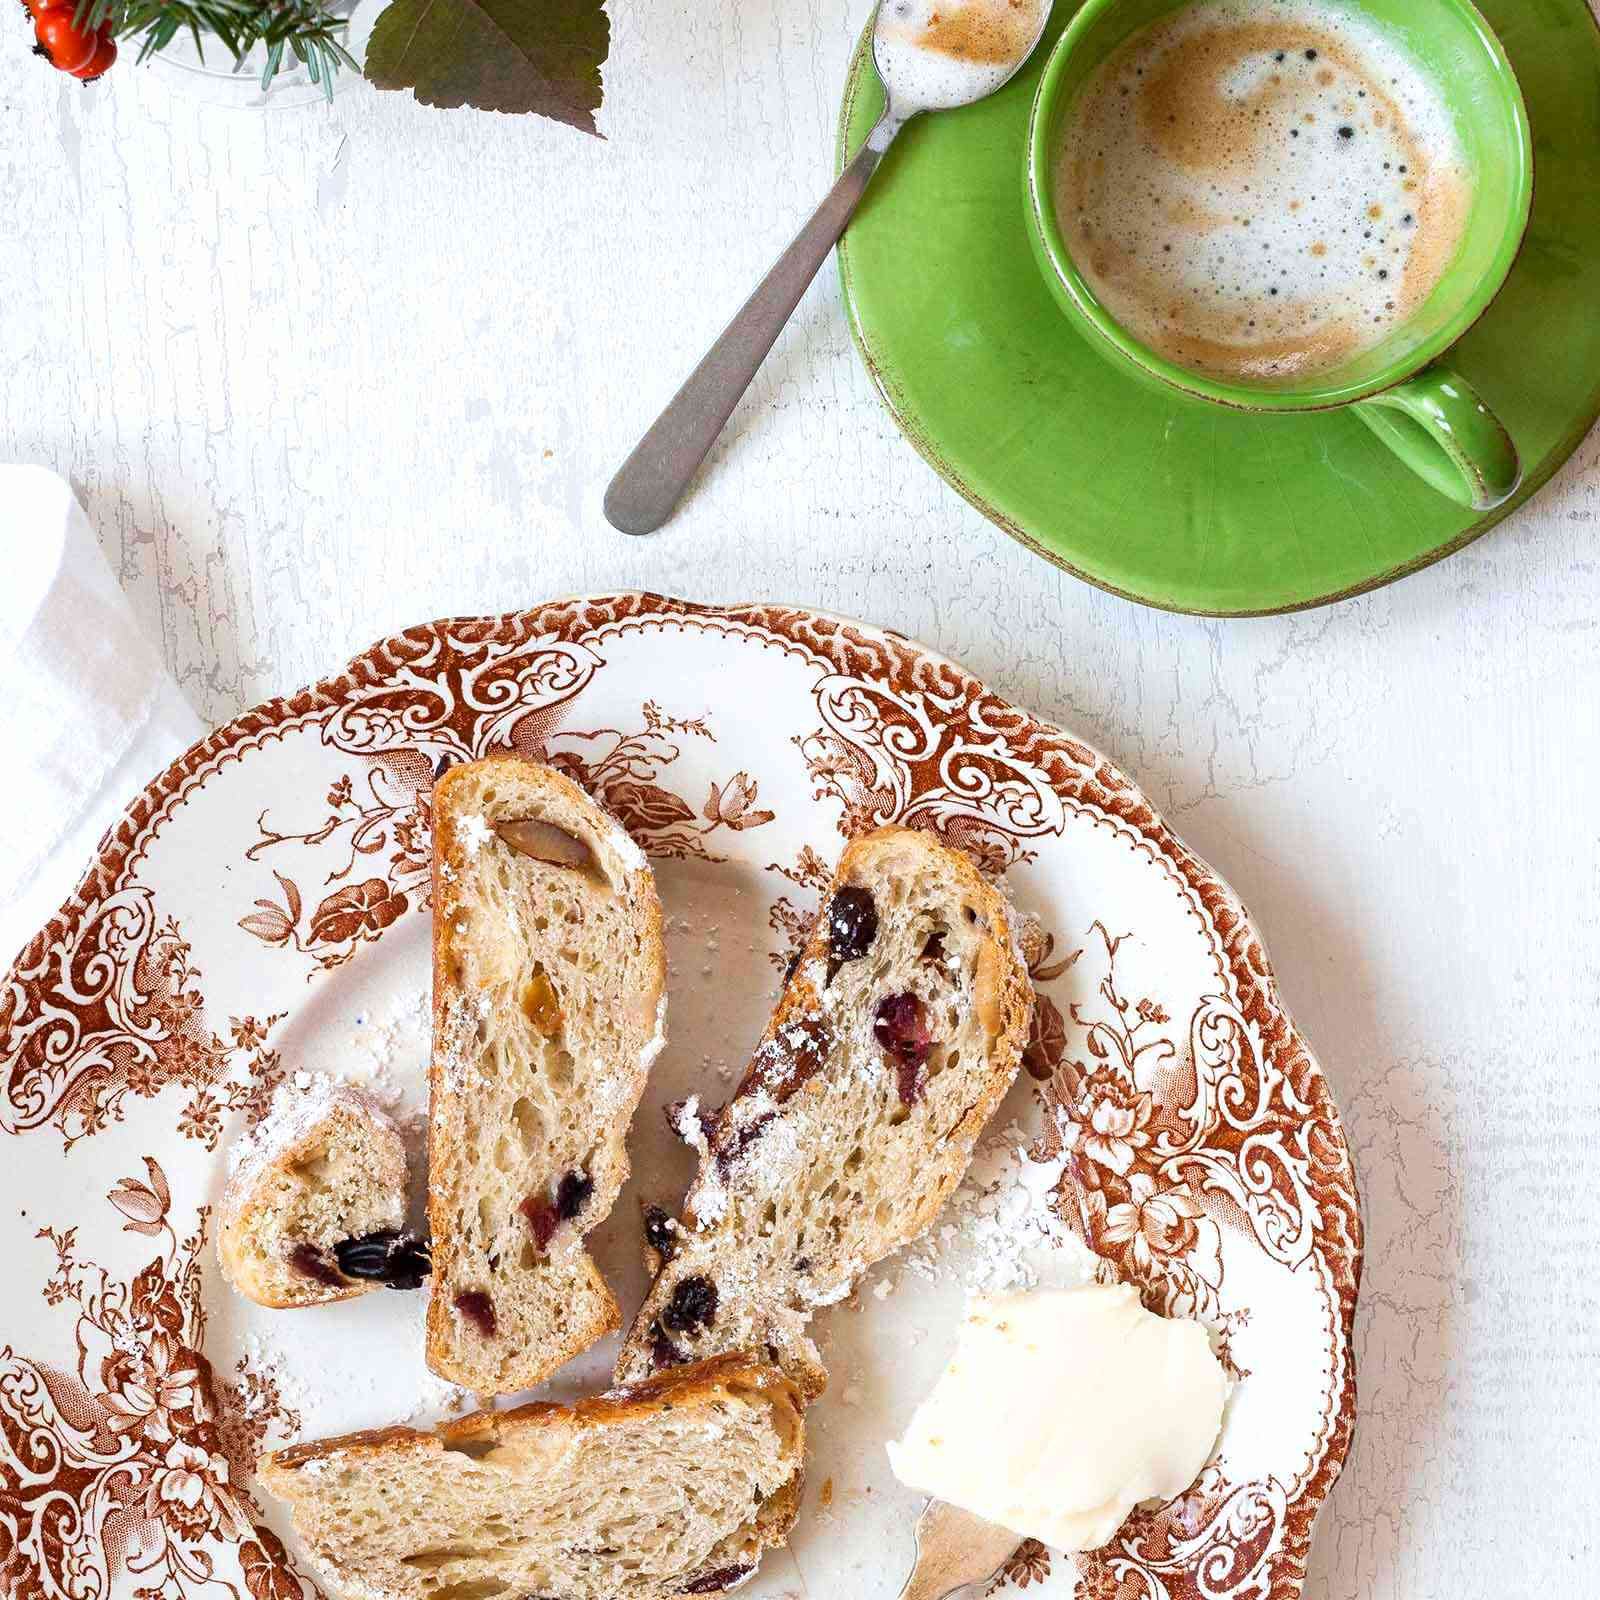 Stollen Christmas Bread filled with rum-soaked dried fruit coated with powdered sugar and sliced on a platter with a fine mesh sieve with powdered sugar and a cup of coffee in a green mug.